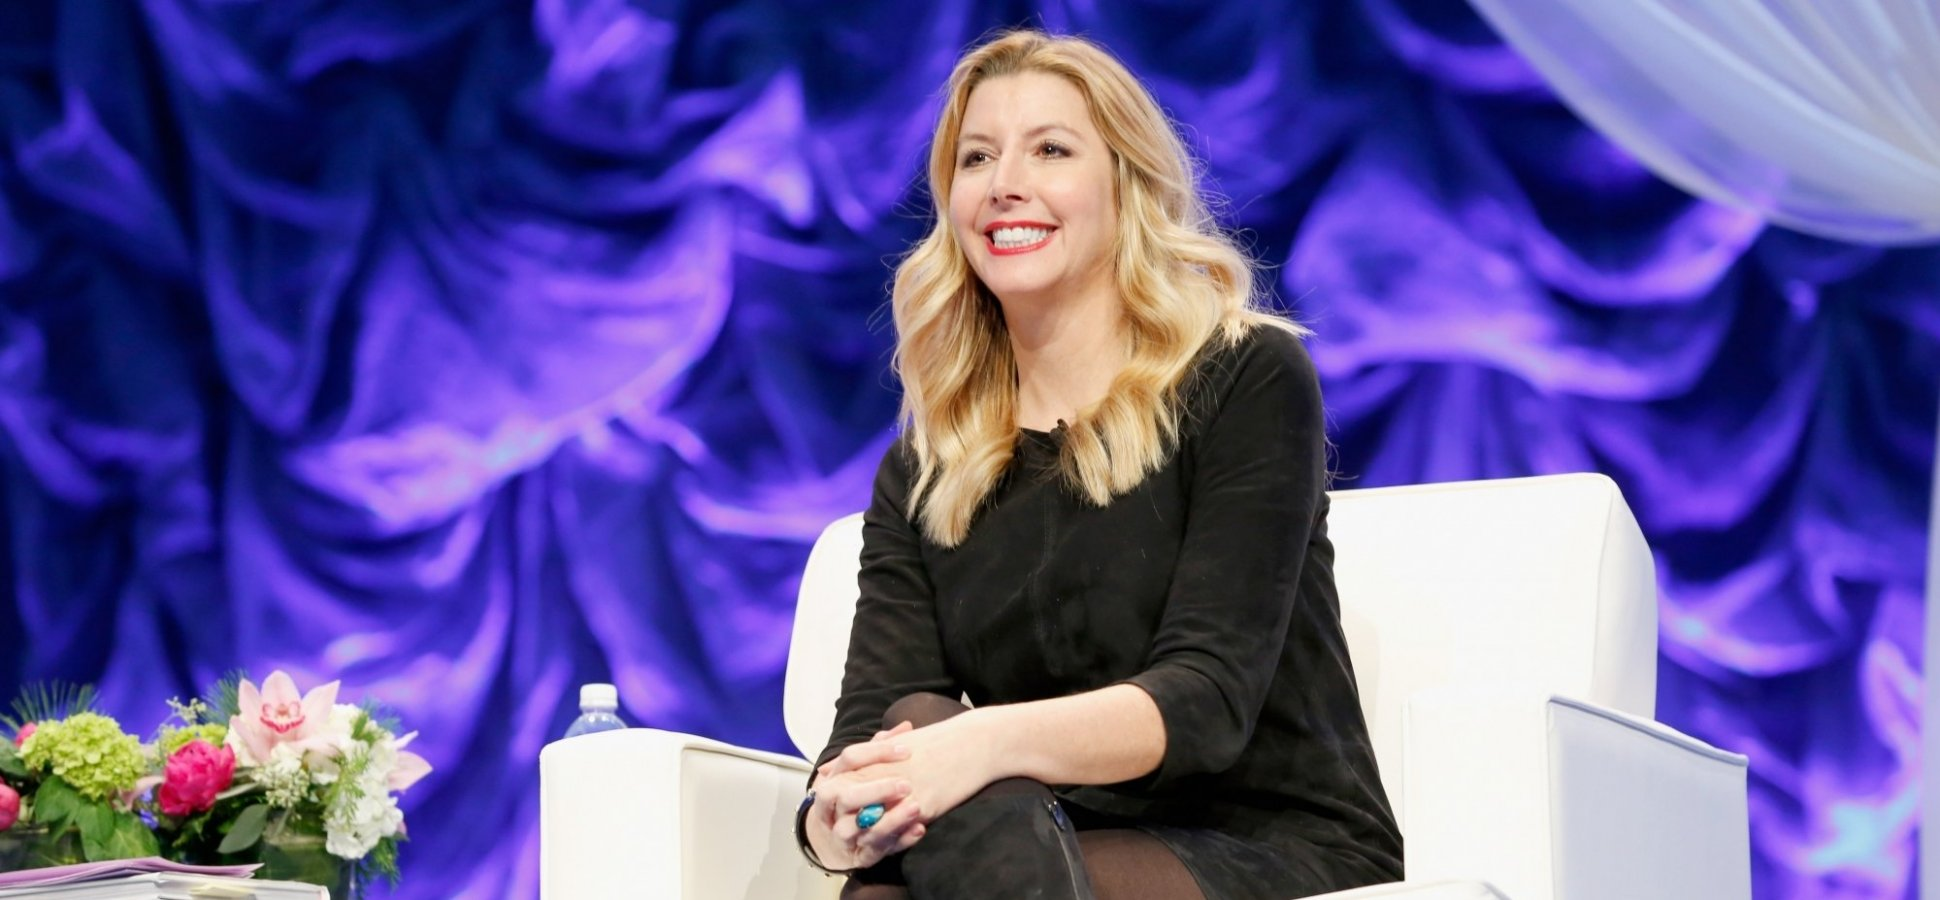 In Her New MasterClass, Self-Made Billionaire Sarah Blakely Shares 7 Remarkable Tips for Turning Any Idea Into a Successful Company